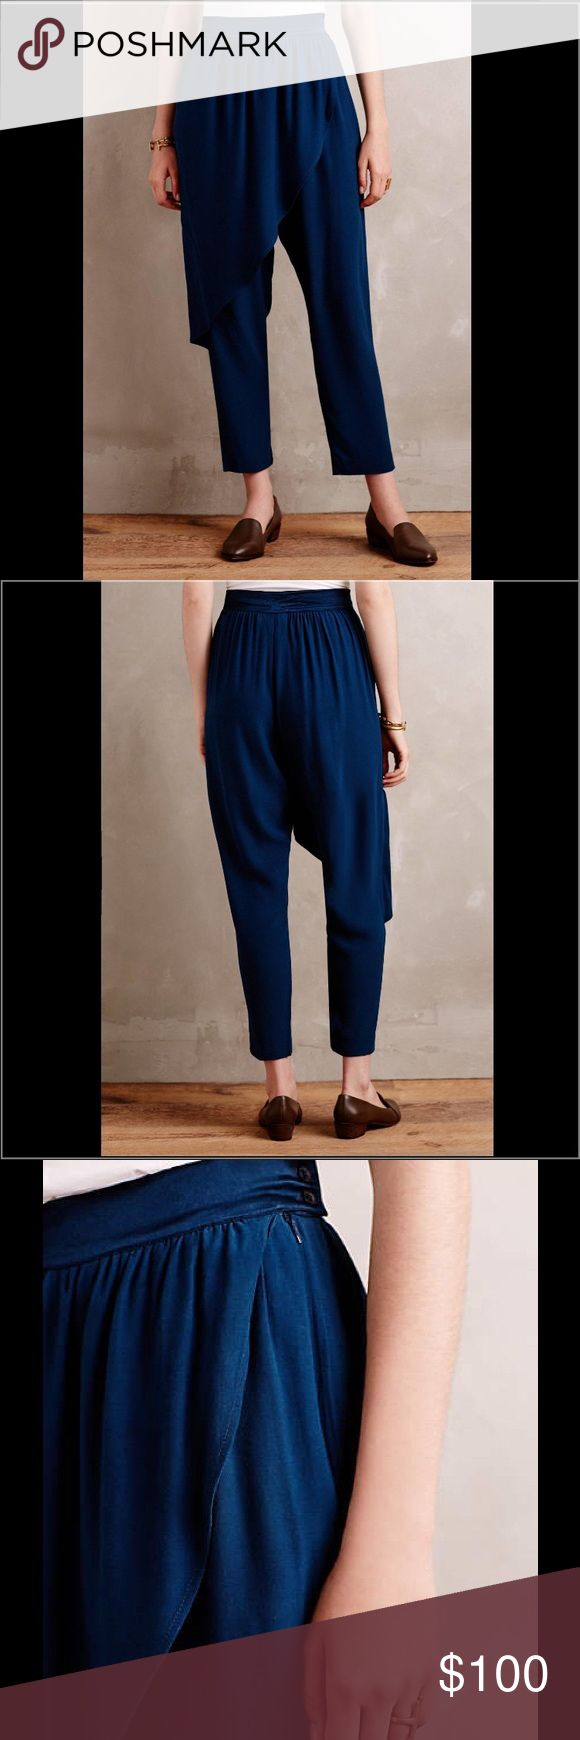 """Anthropologie Angelica Harem Pants The most unique pants you'll own! The granddaughter of an Italian tailor & daughter of an interior designer, Corey Lynn Calter was born to create. Experienced in opera houses, Broadway shows & New York's punk scene, her eponymous line is defined by prints, flattering cuts & punchy hues that are inspired by her vast & varied background. Harem silhouette and satin waistband and lined skirt flap. Side pockets and side zip and tabbed button closure. 27"""" inseam…"""